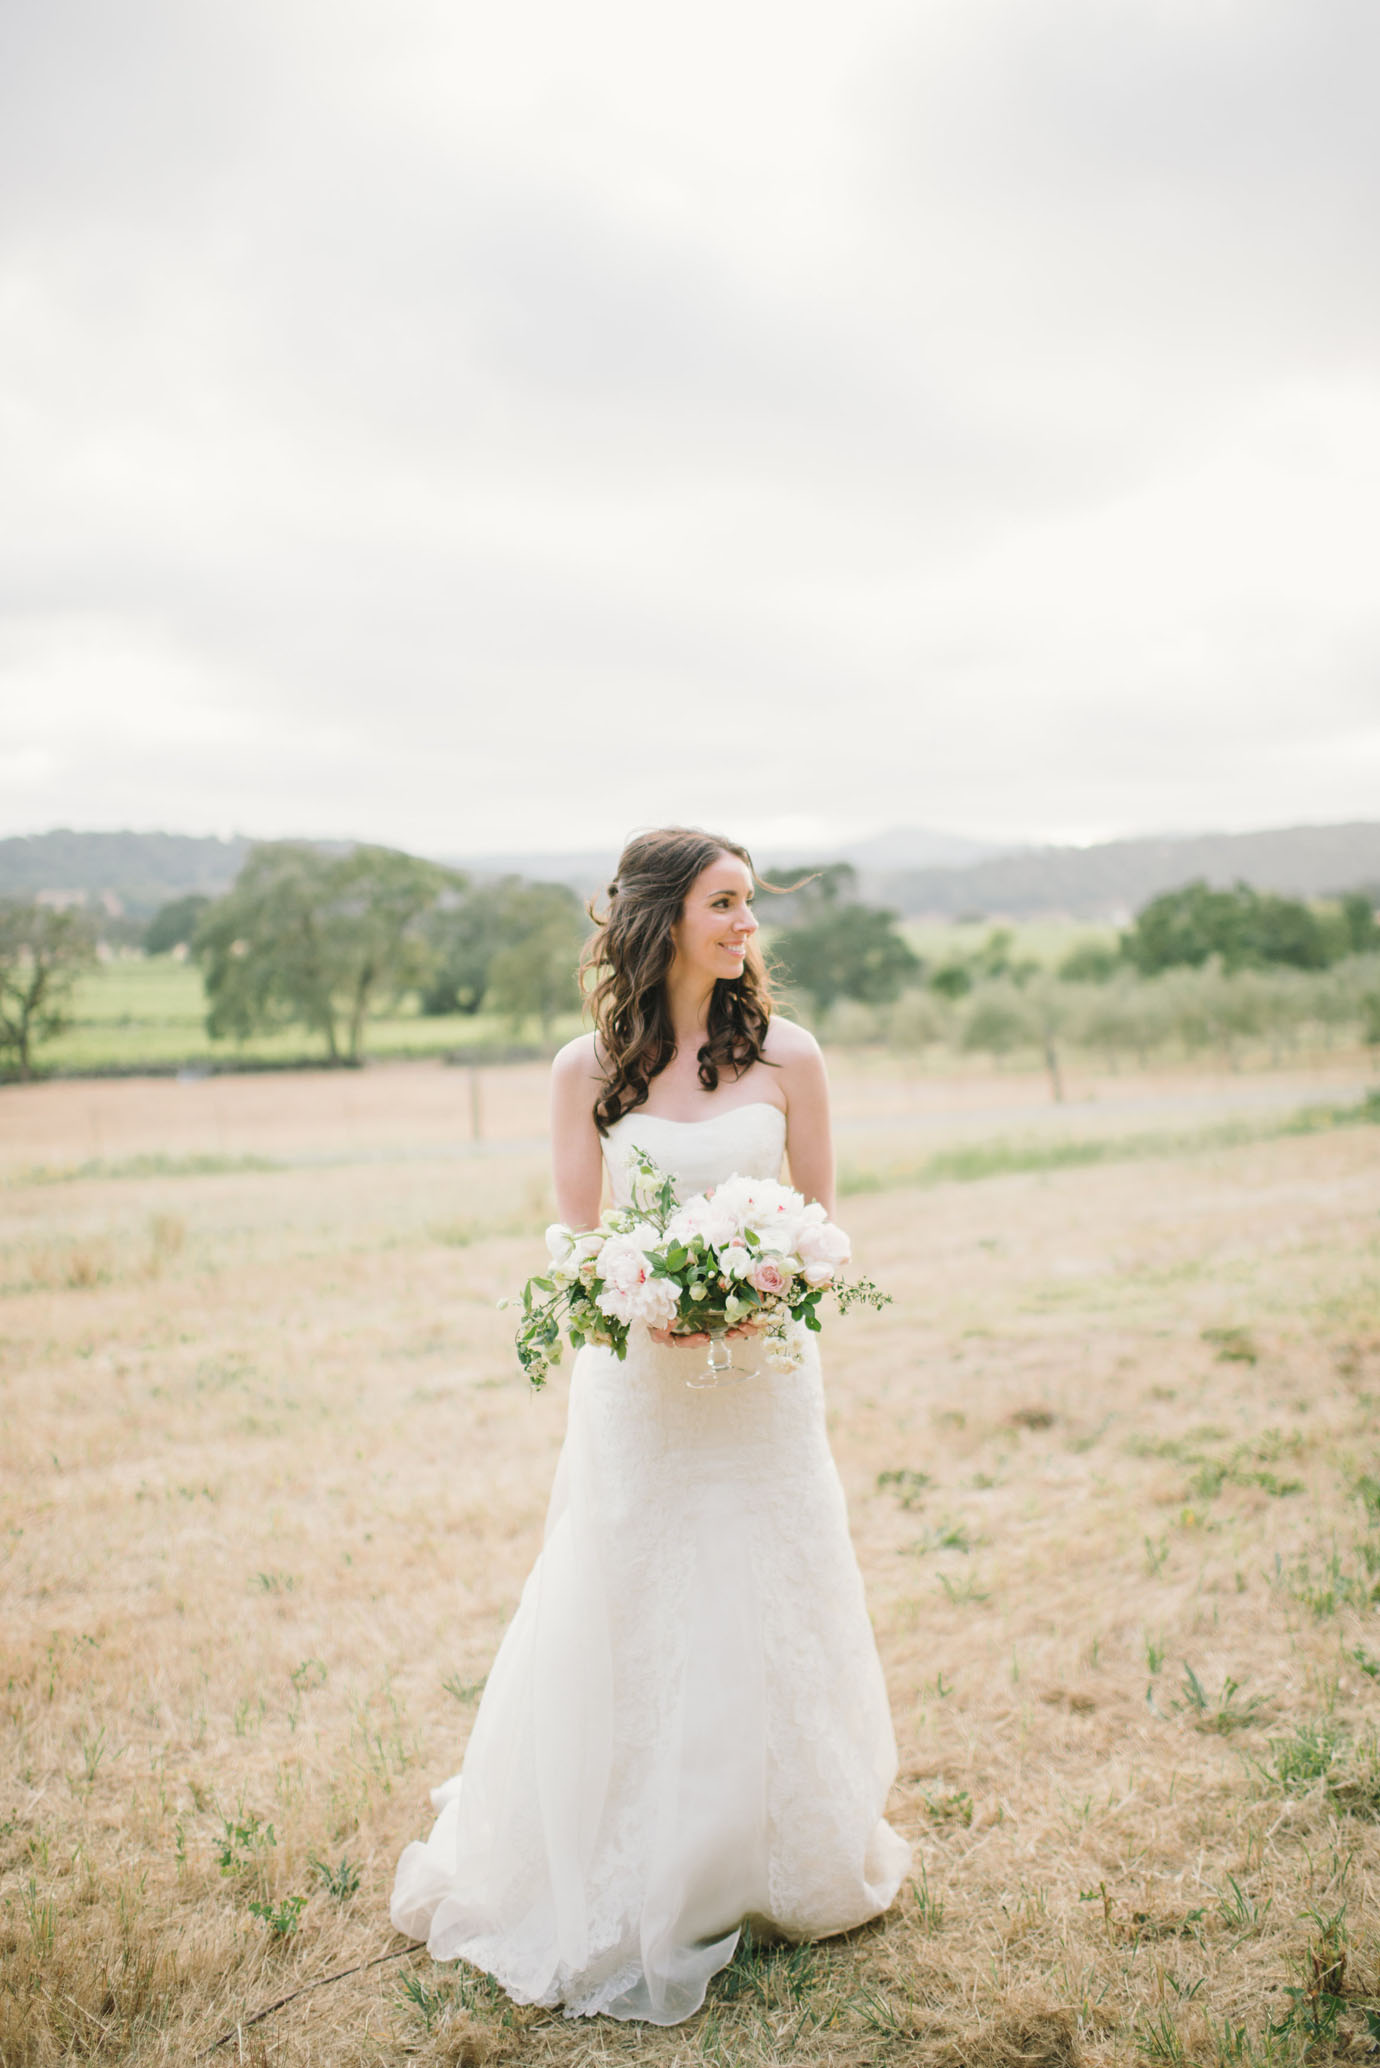 23-real-wedding-at-beltane-ranch093